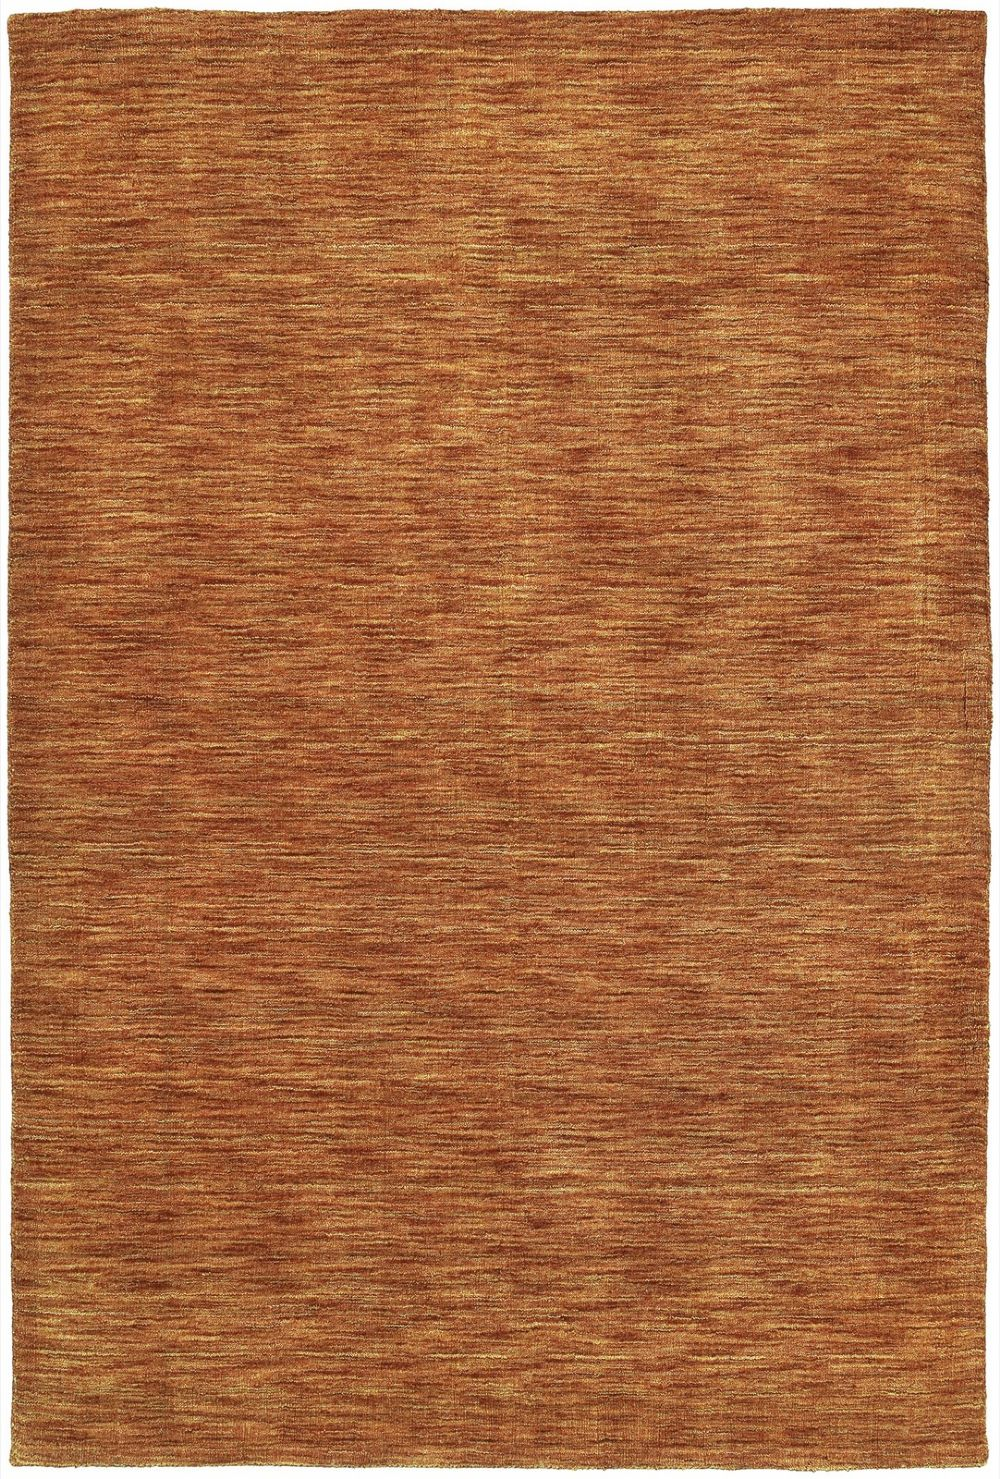 kaleen renaissance solid/striped area rug collection